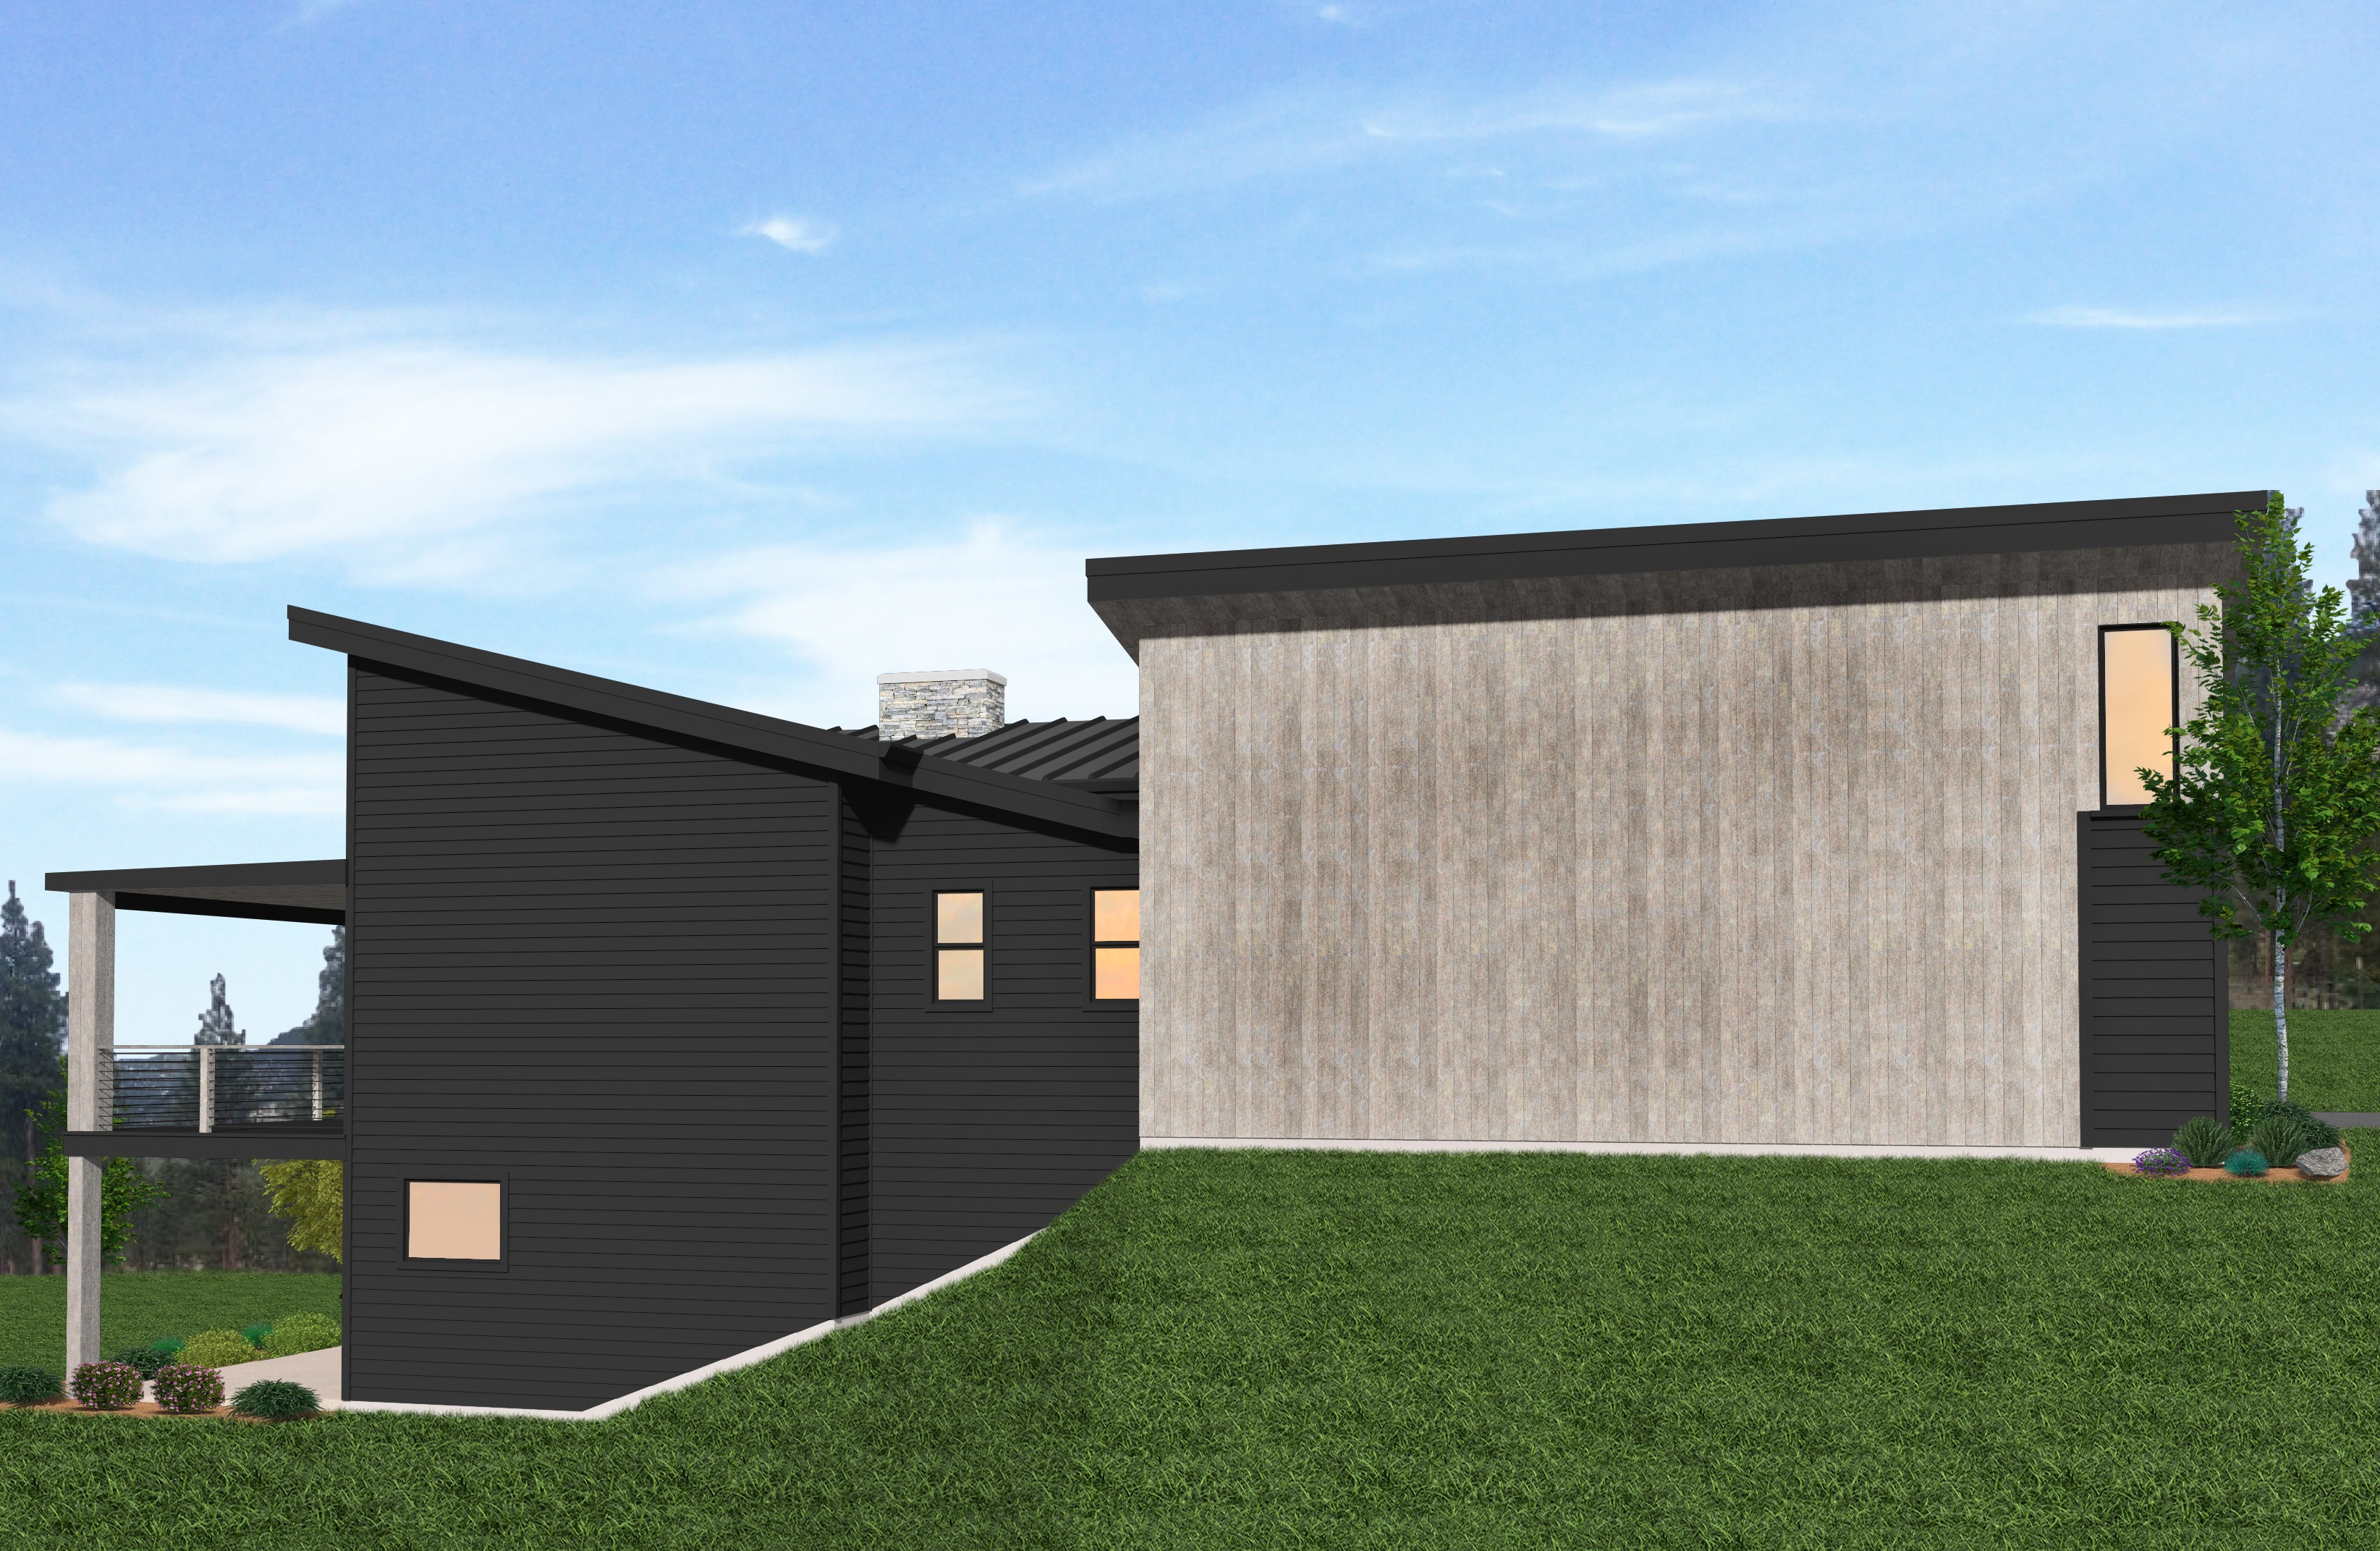 Andrew House Plan Modern Shed Roof Home Design W 2 Car Garage